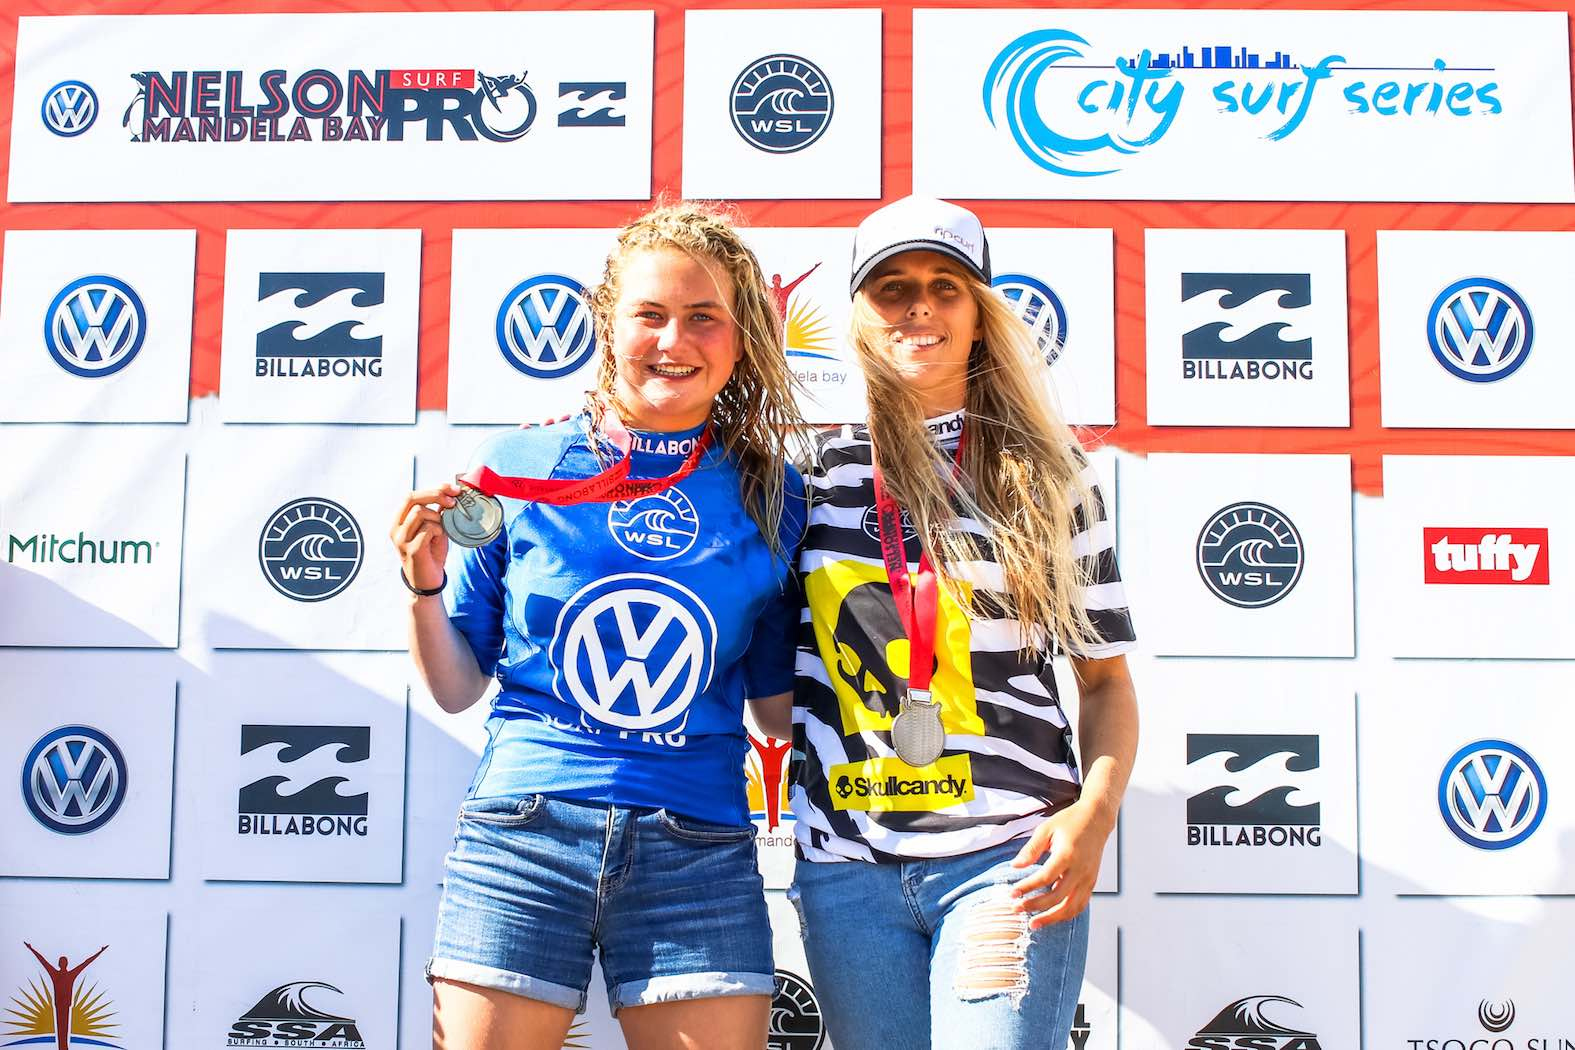 Volkswagen Nelson Mandela Bay Surf Pro Women's final podium